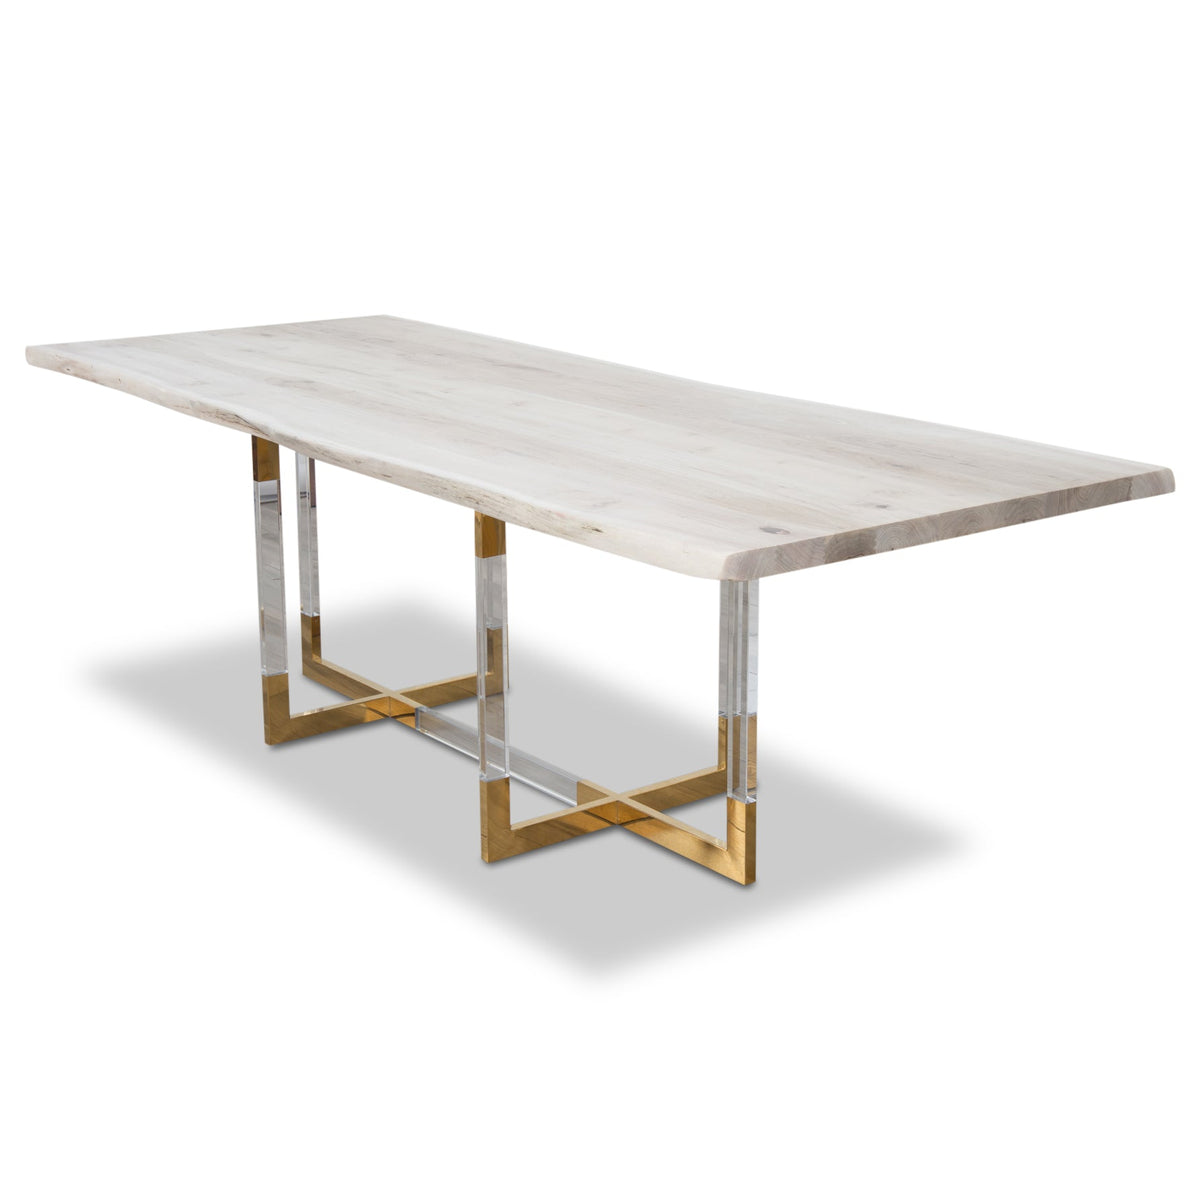 Sao Paulo Solid Bleached Live Edge Walnut Slab Dining Table - ModShop1.com